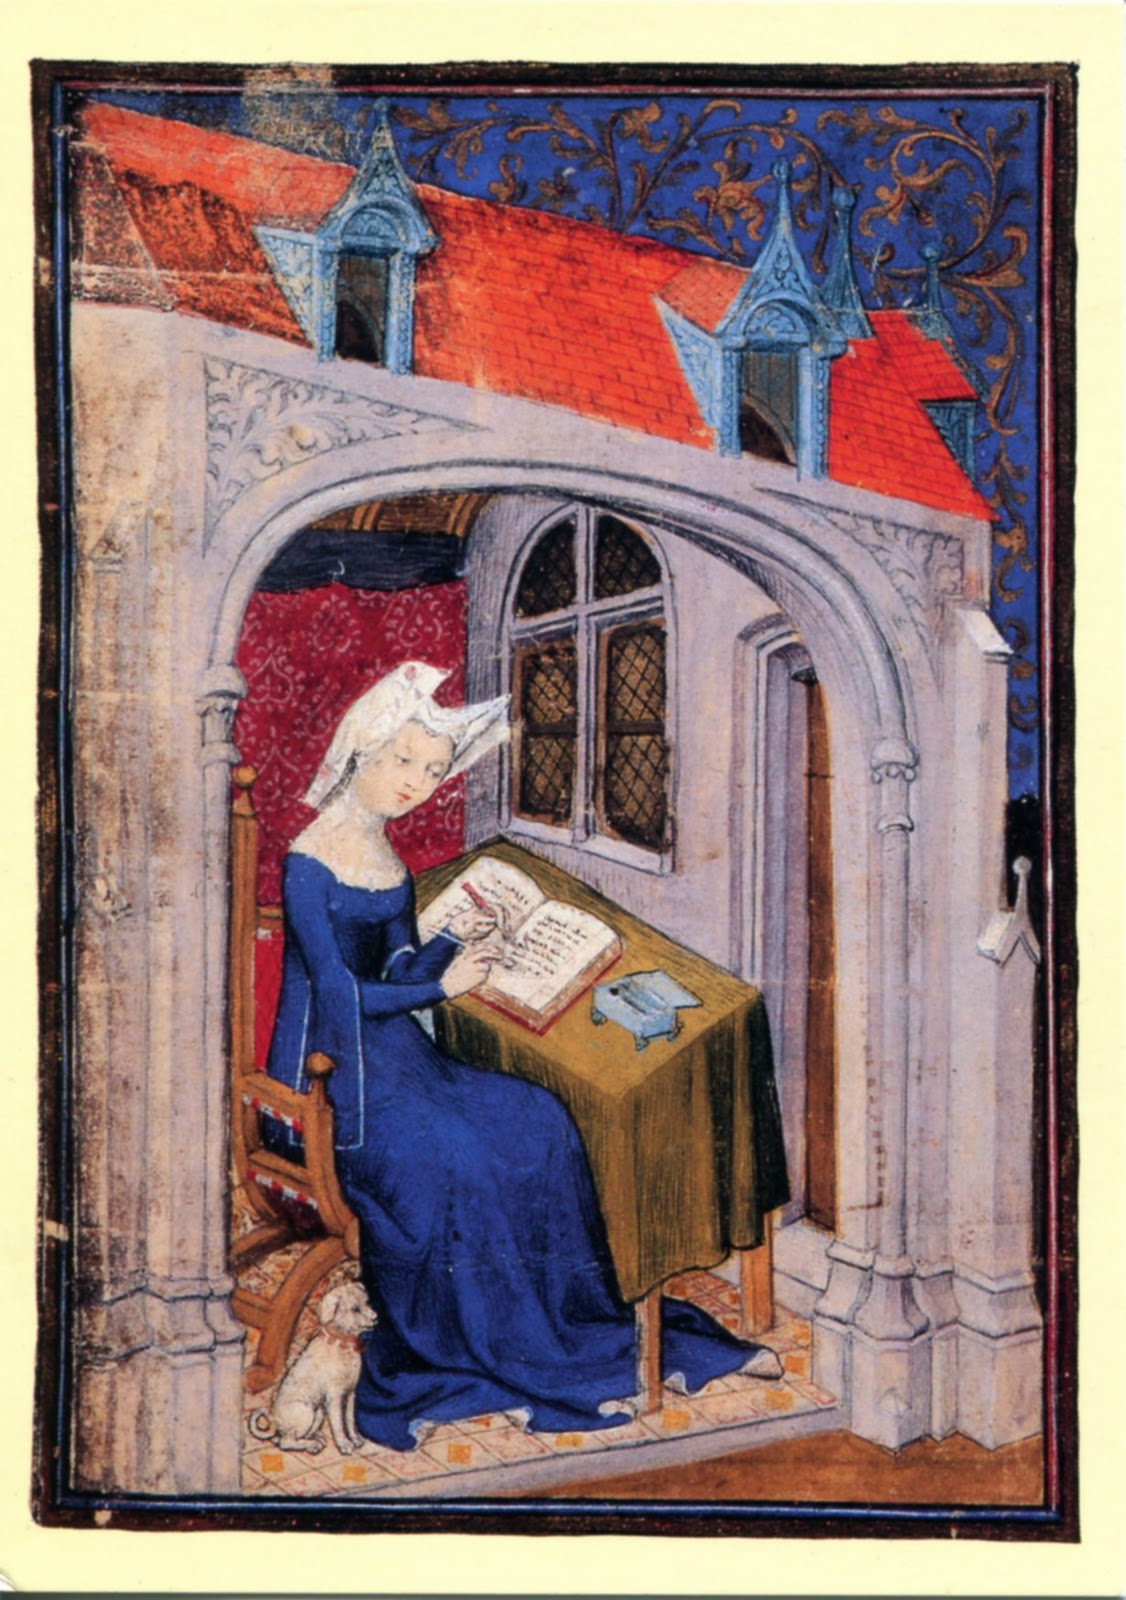 Christine of Pizan writing her book. London, British Library, Harley 4431, f. 4.